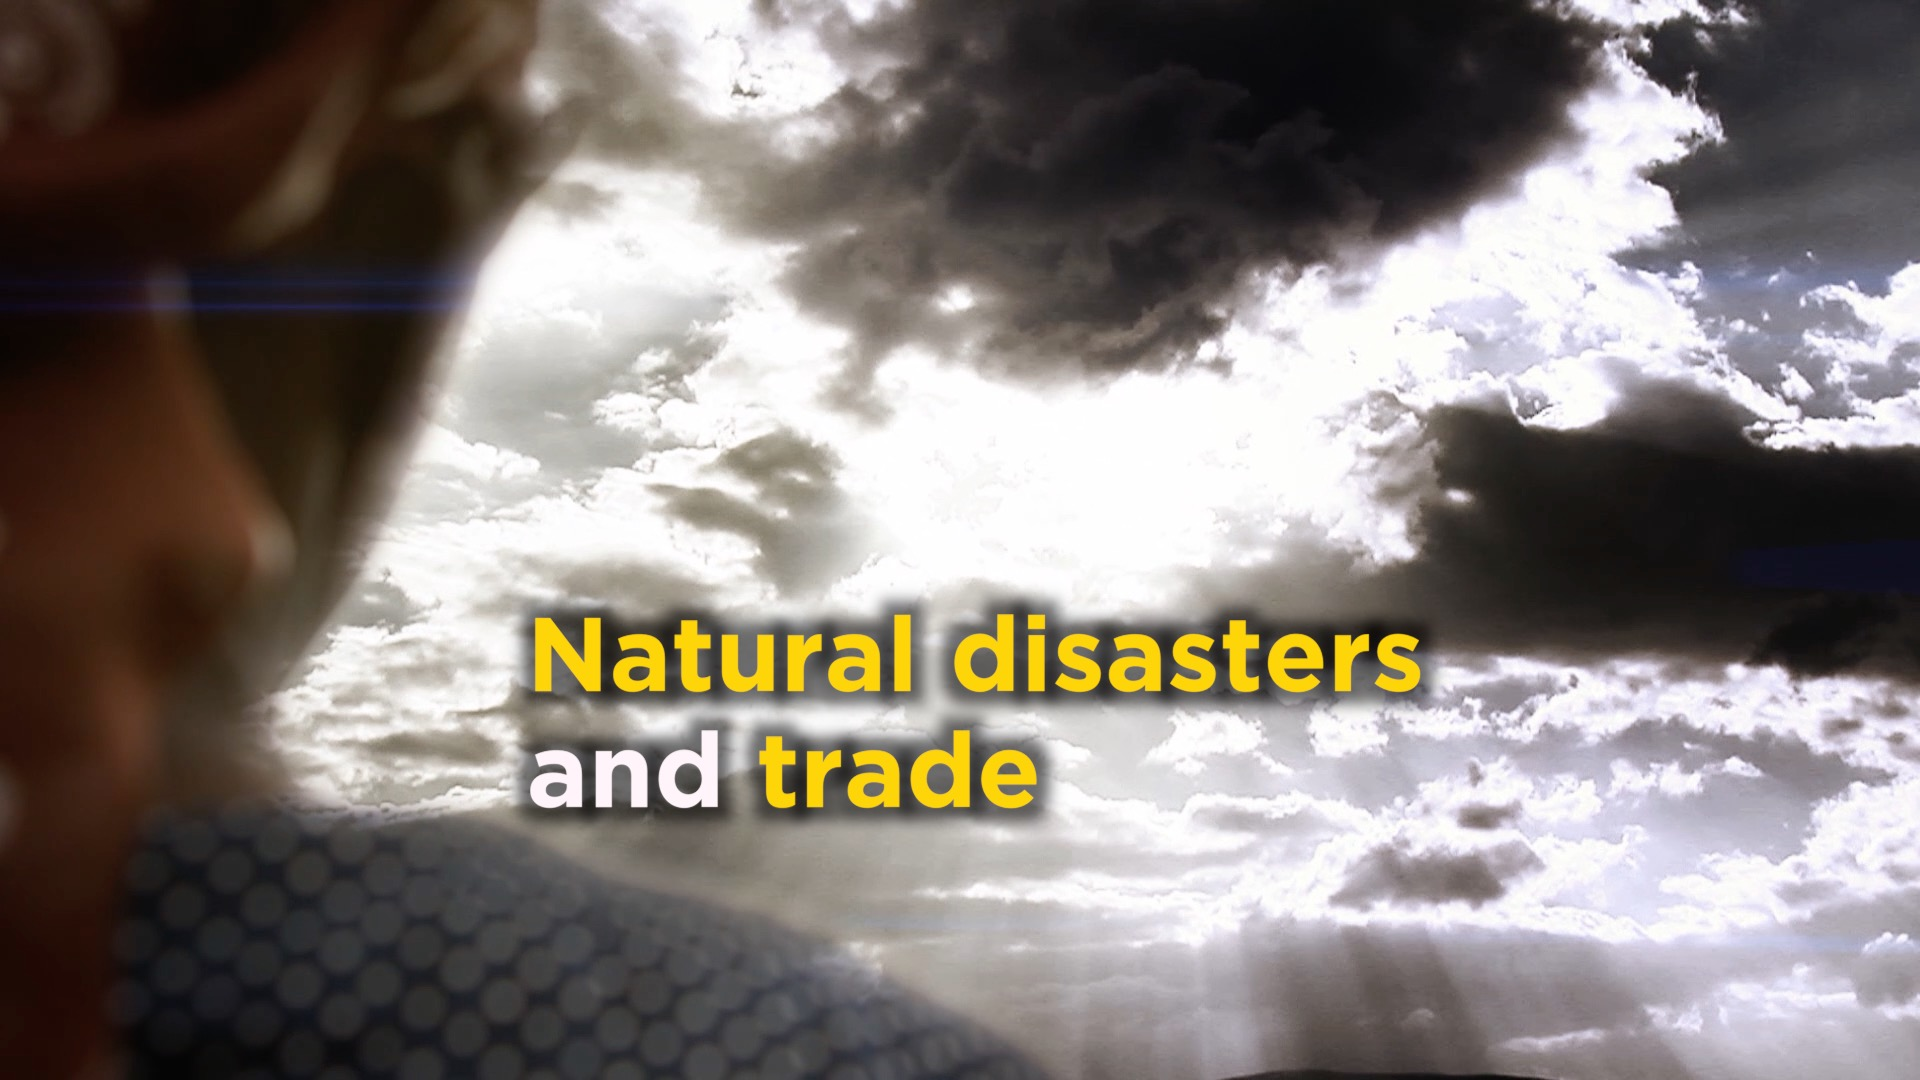 Natural disasters and trade